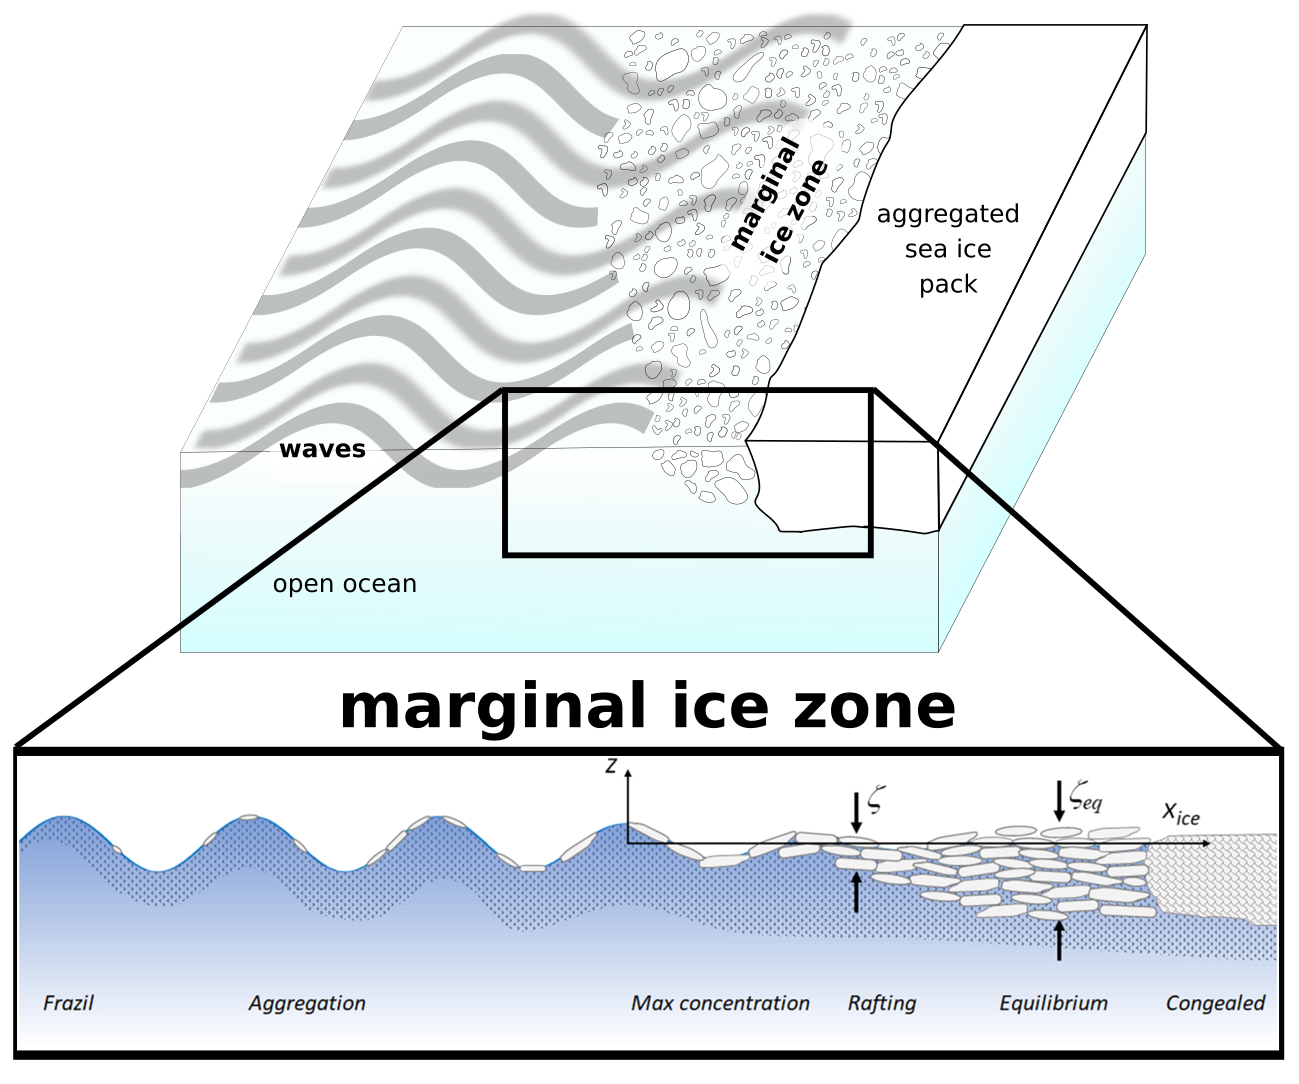 Wave and sea ice interactions